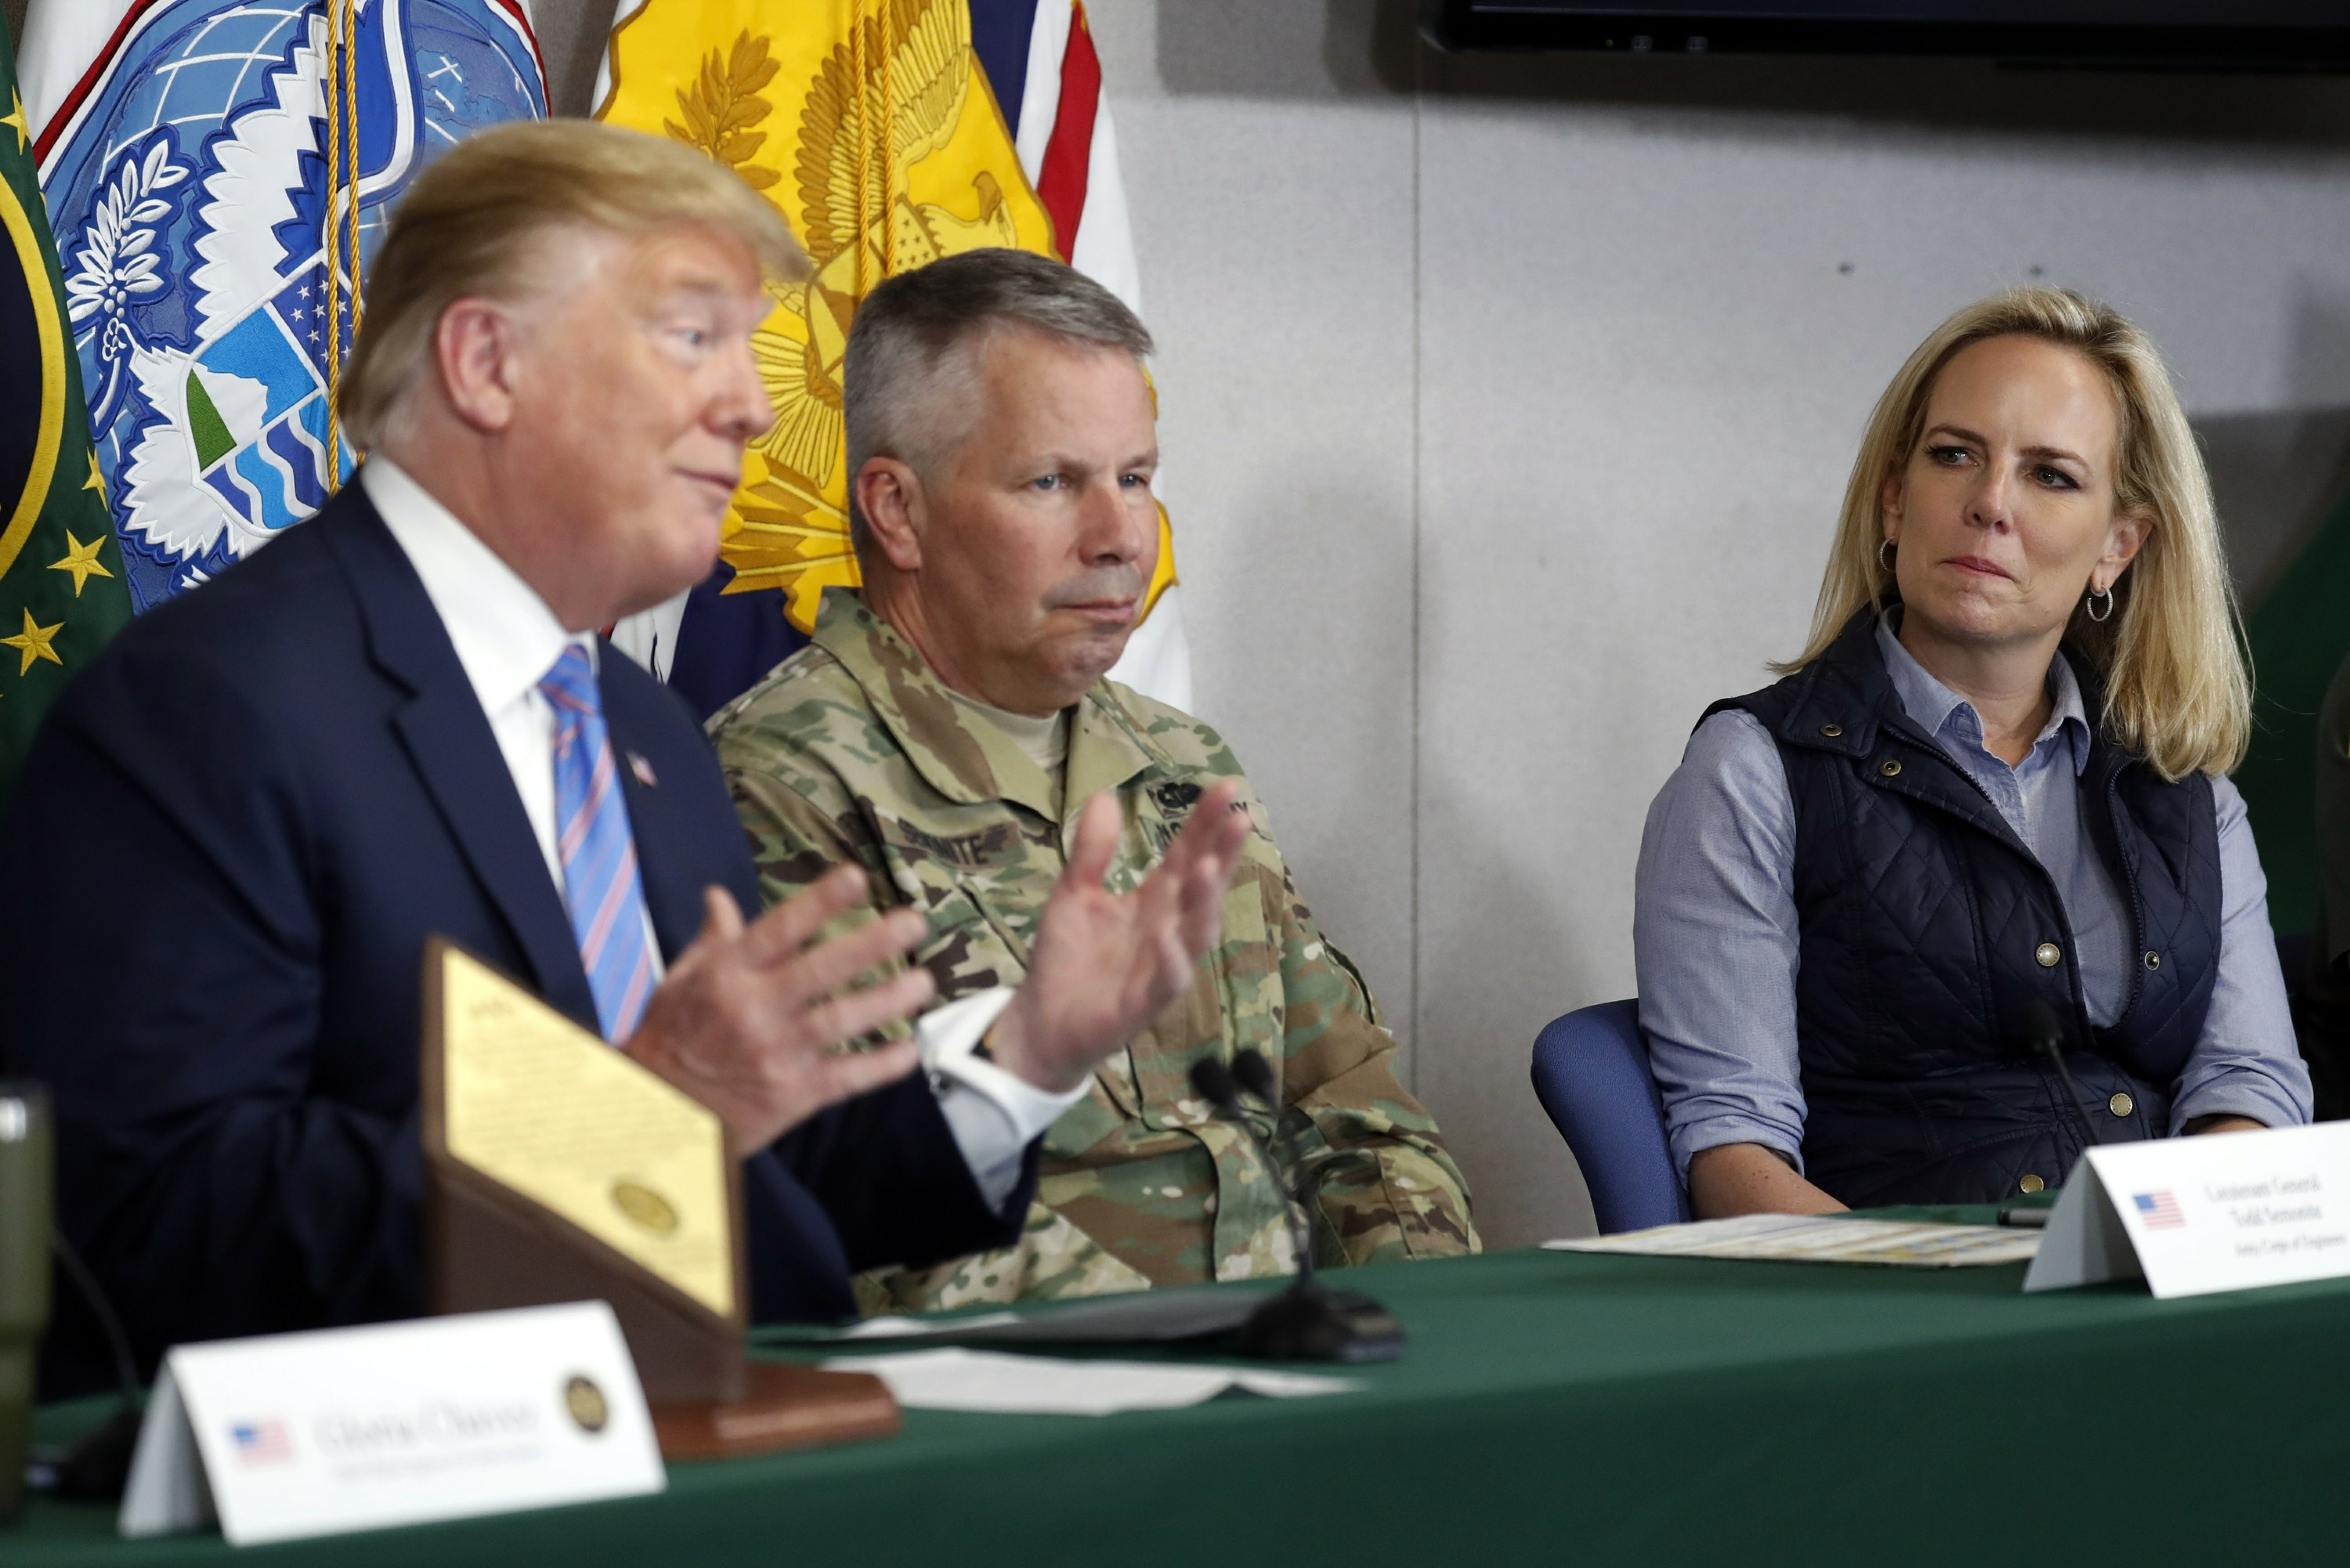 The Latest: Trump downplays asylum claims at border